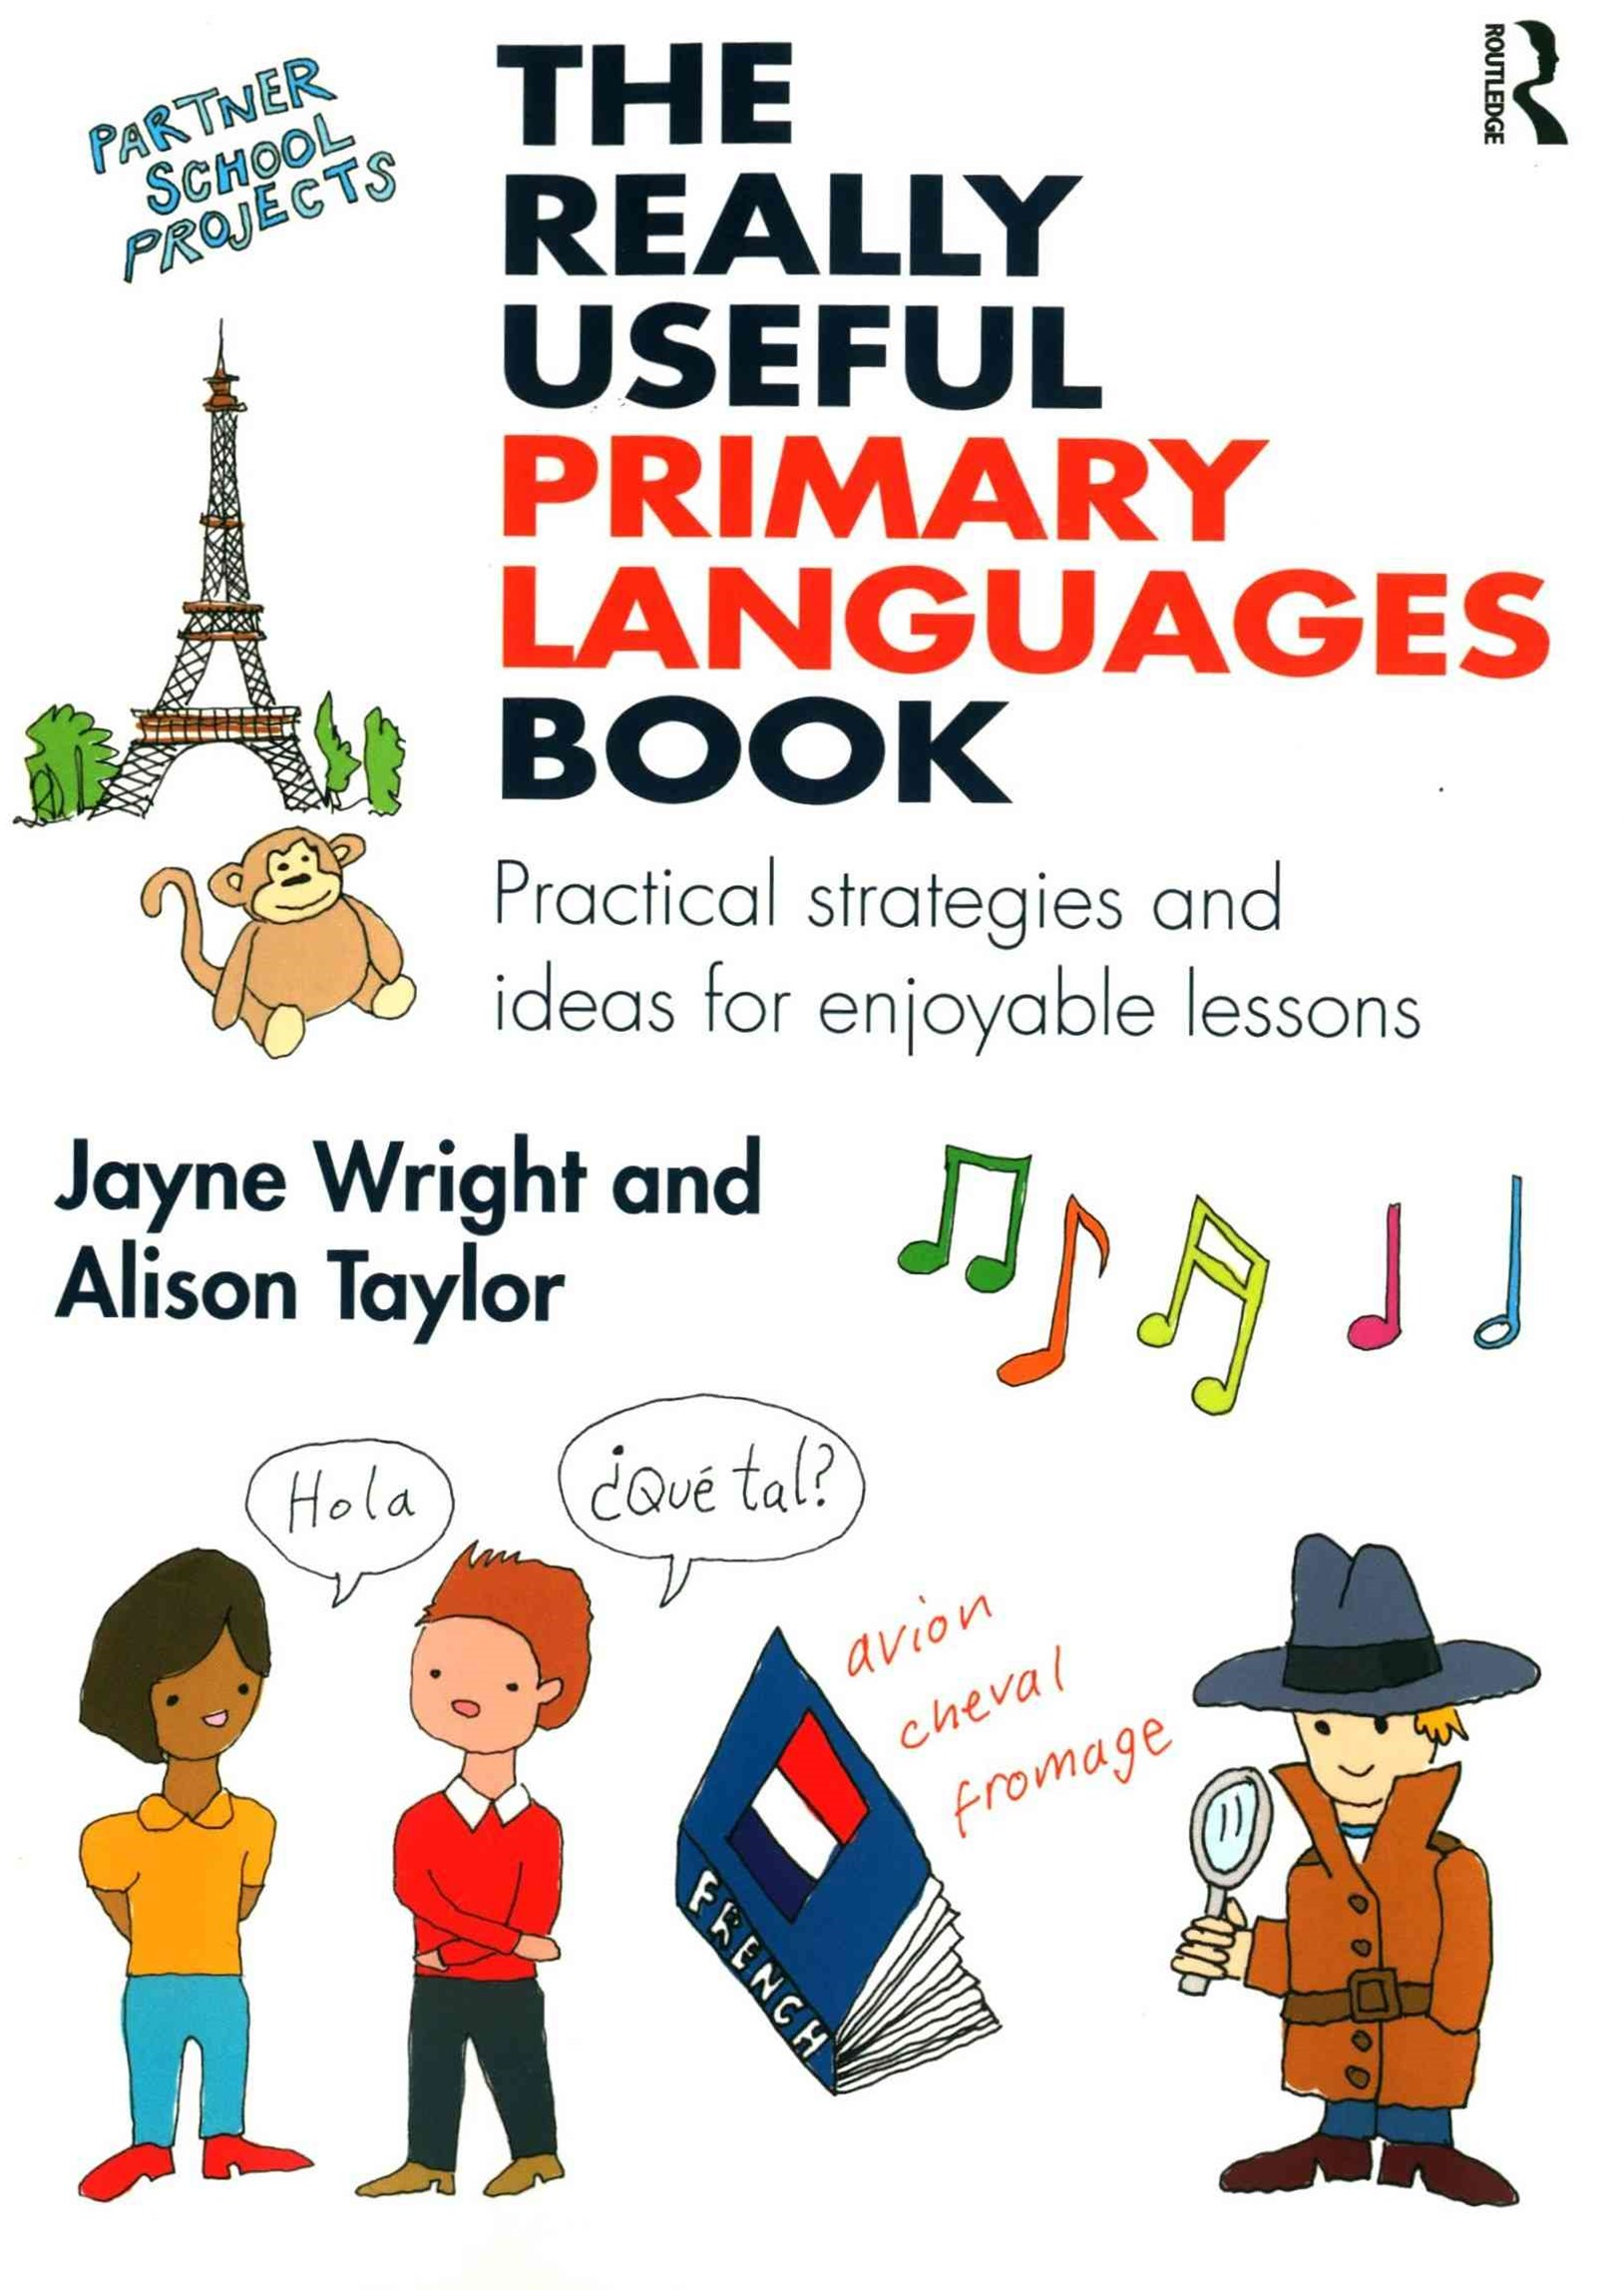 Really Useful Primary Languages Book